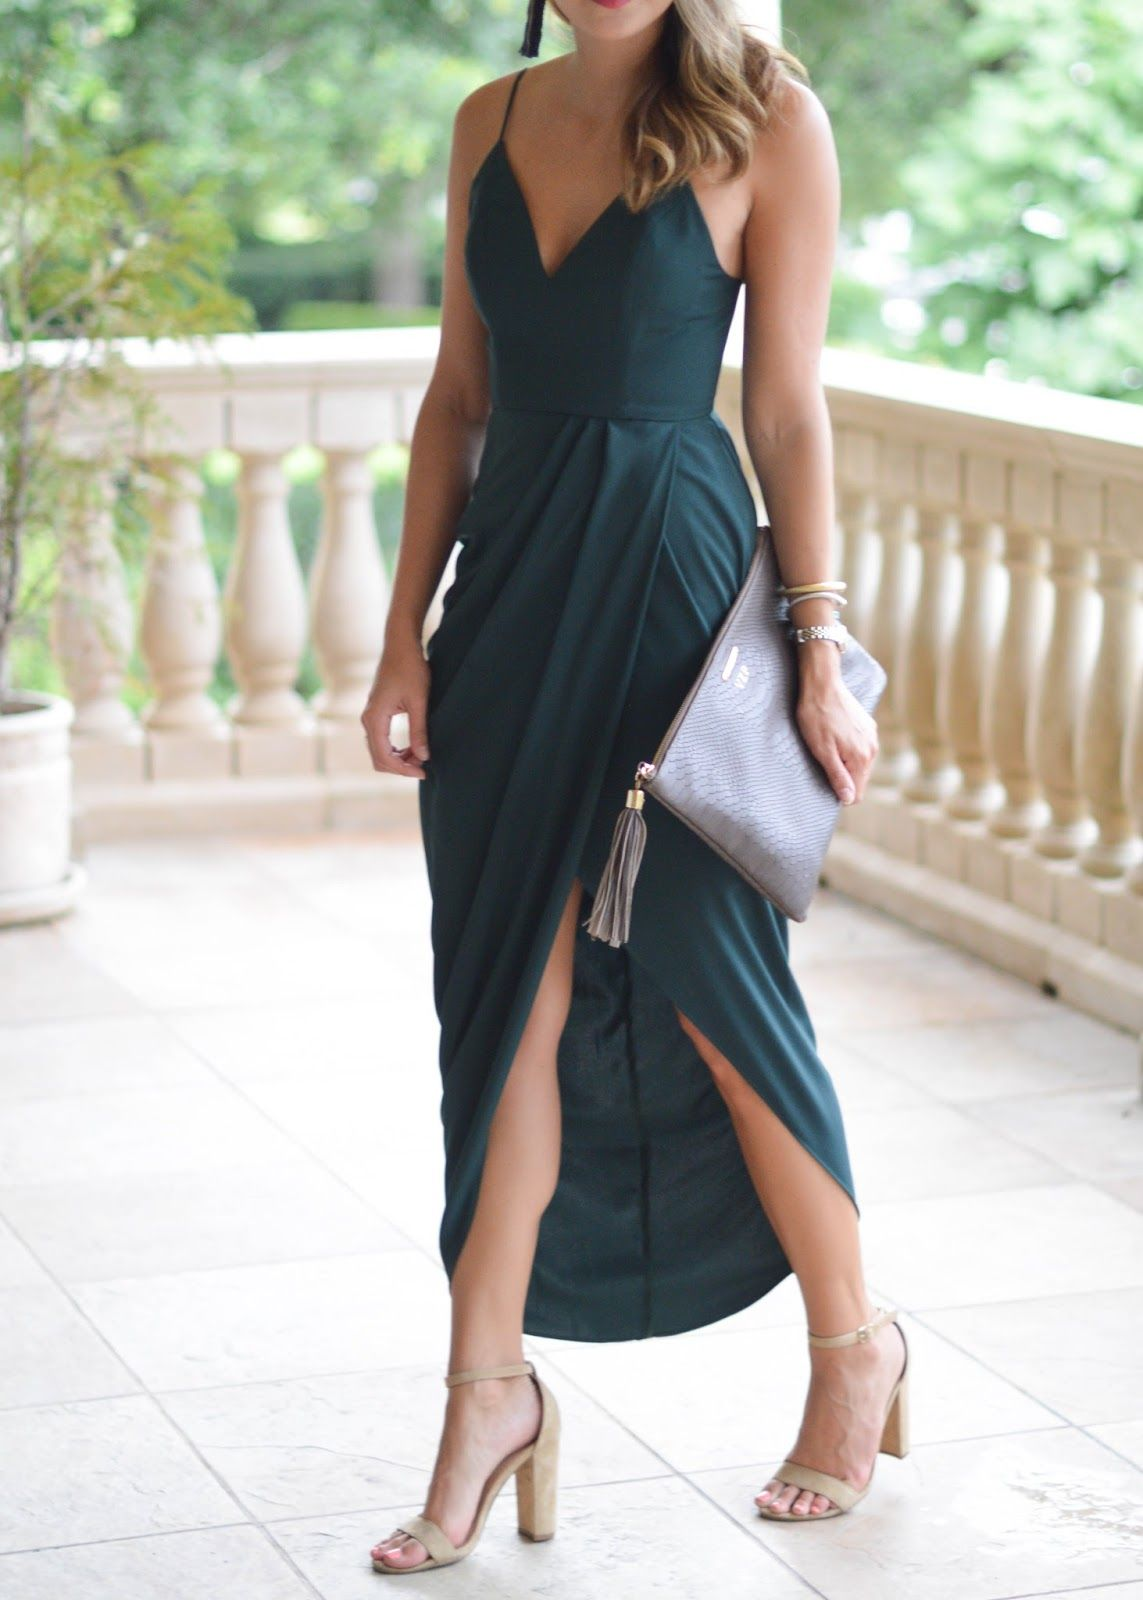 That One Dress  My Style  Pinterest  Wedding guest style Dress